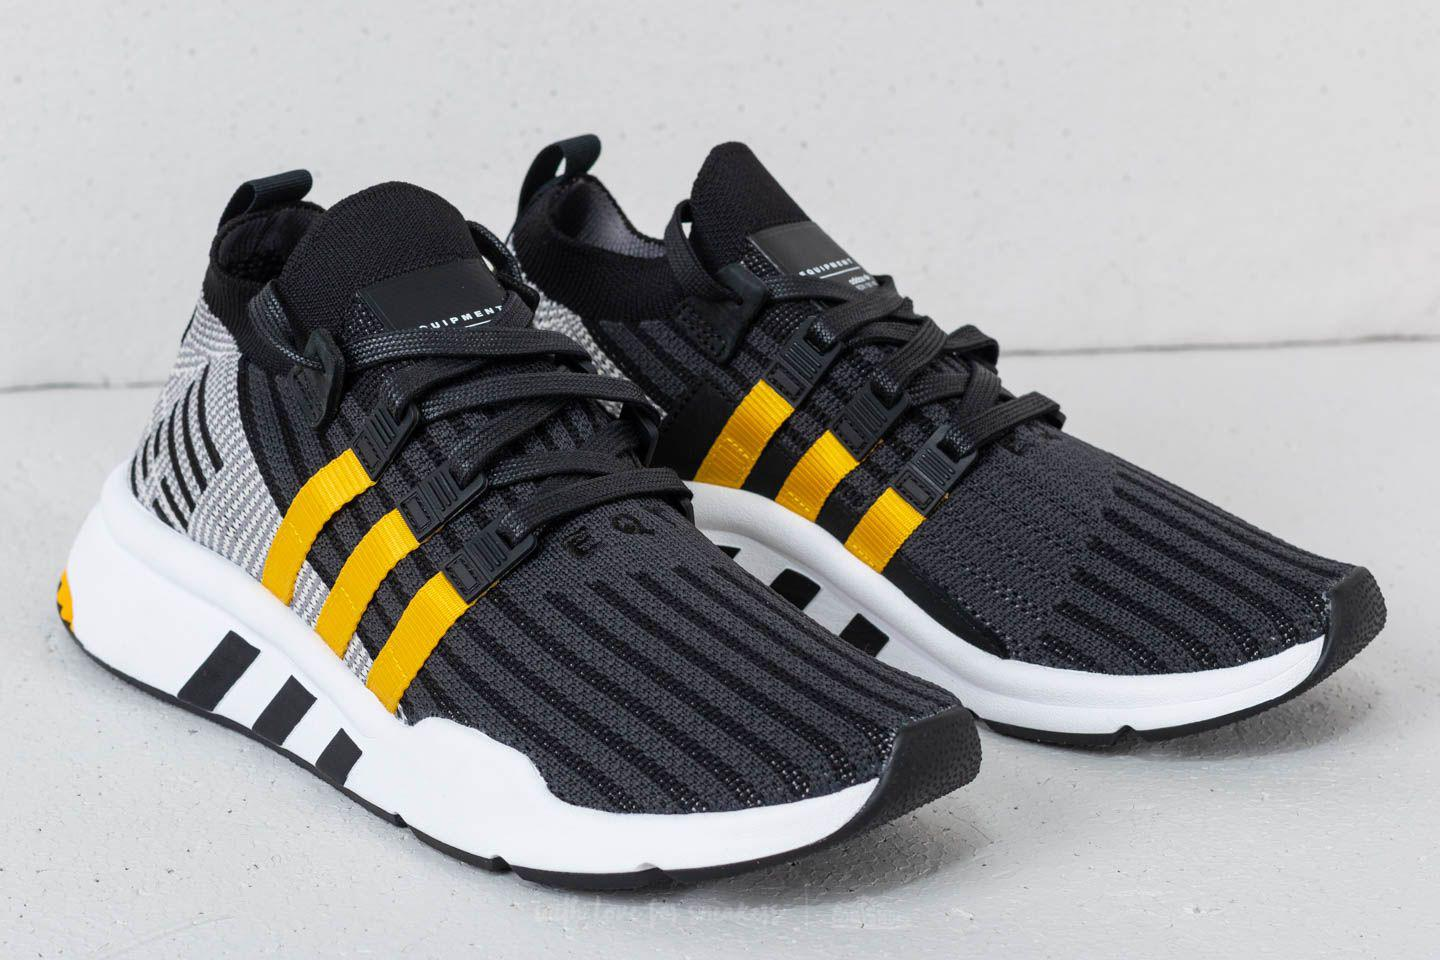 buy popular e65e6 9253f Lyst - adidas Originals Adidas Eqt Support Mid Adv Primeknit